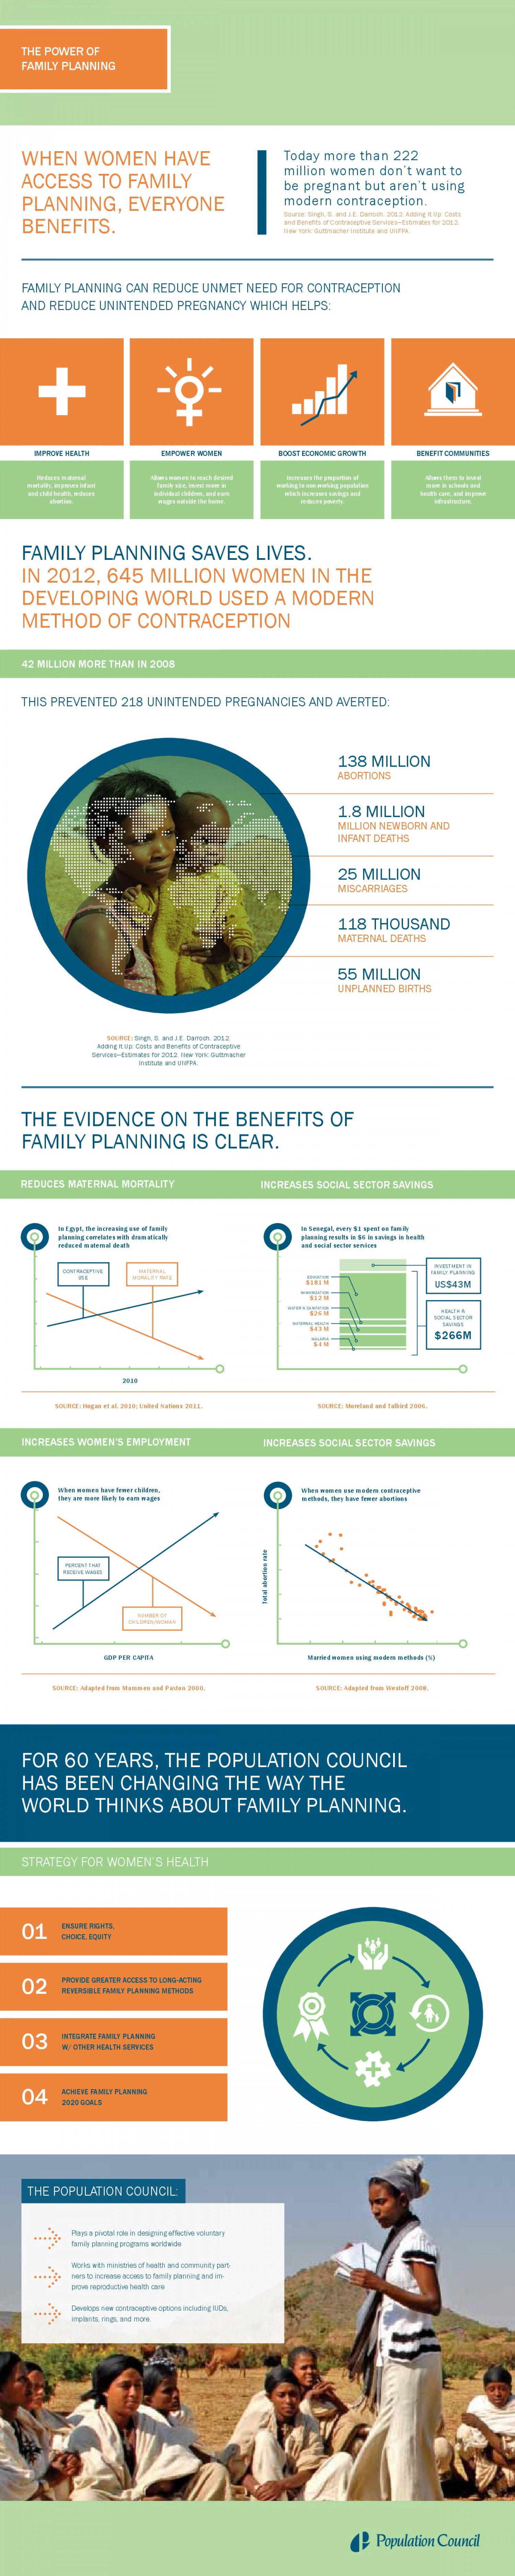 The Power of Family Planning Infographic